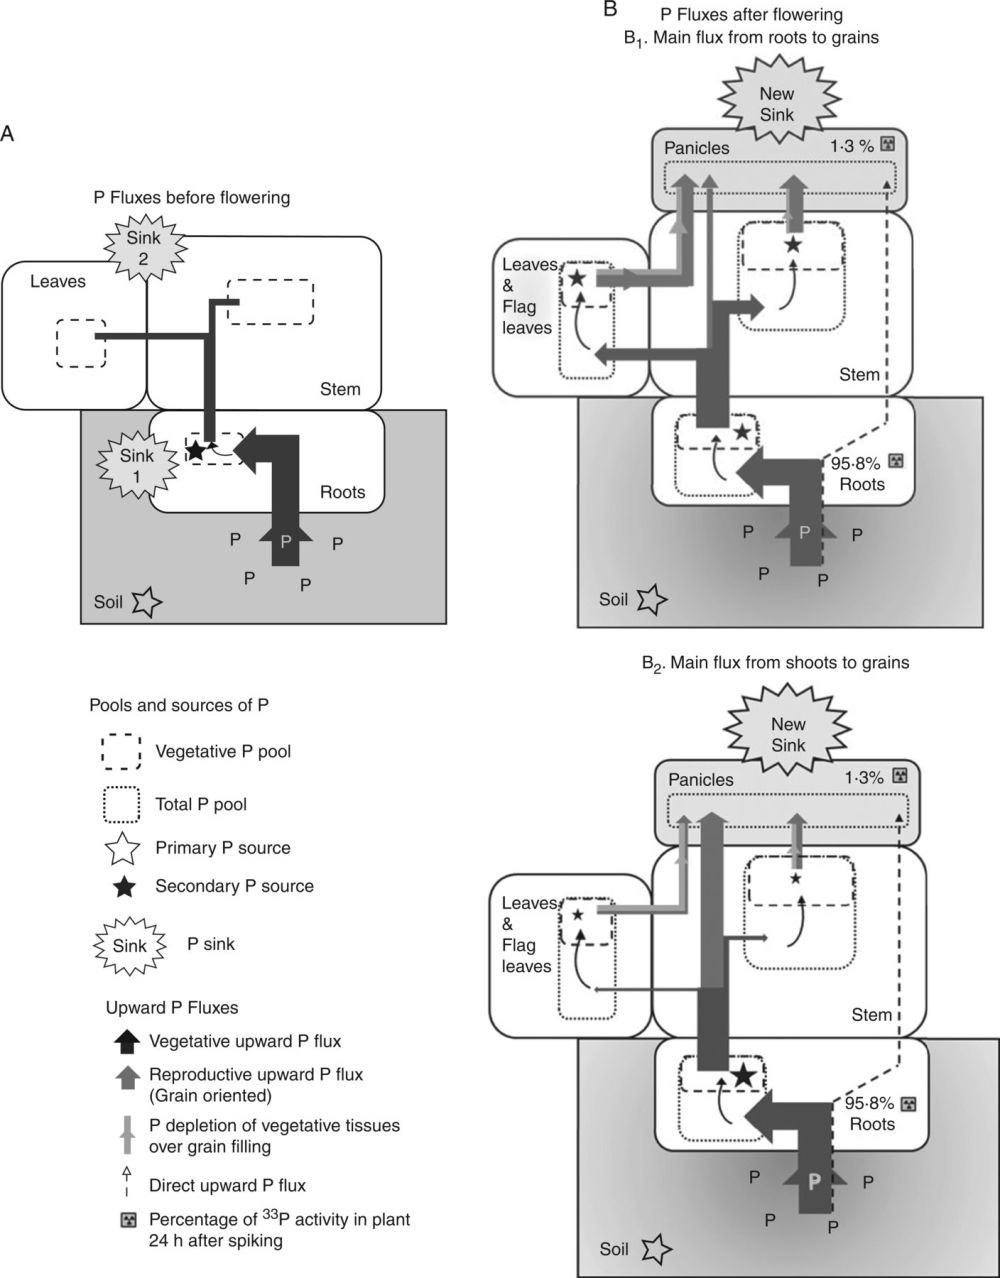 medium resolution of proposed model of upward p fluxes in rice plants before a and after